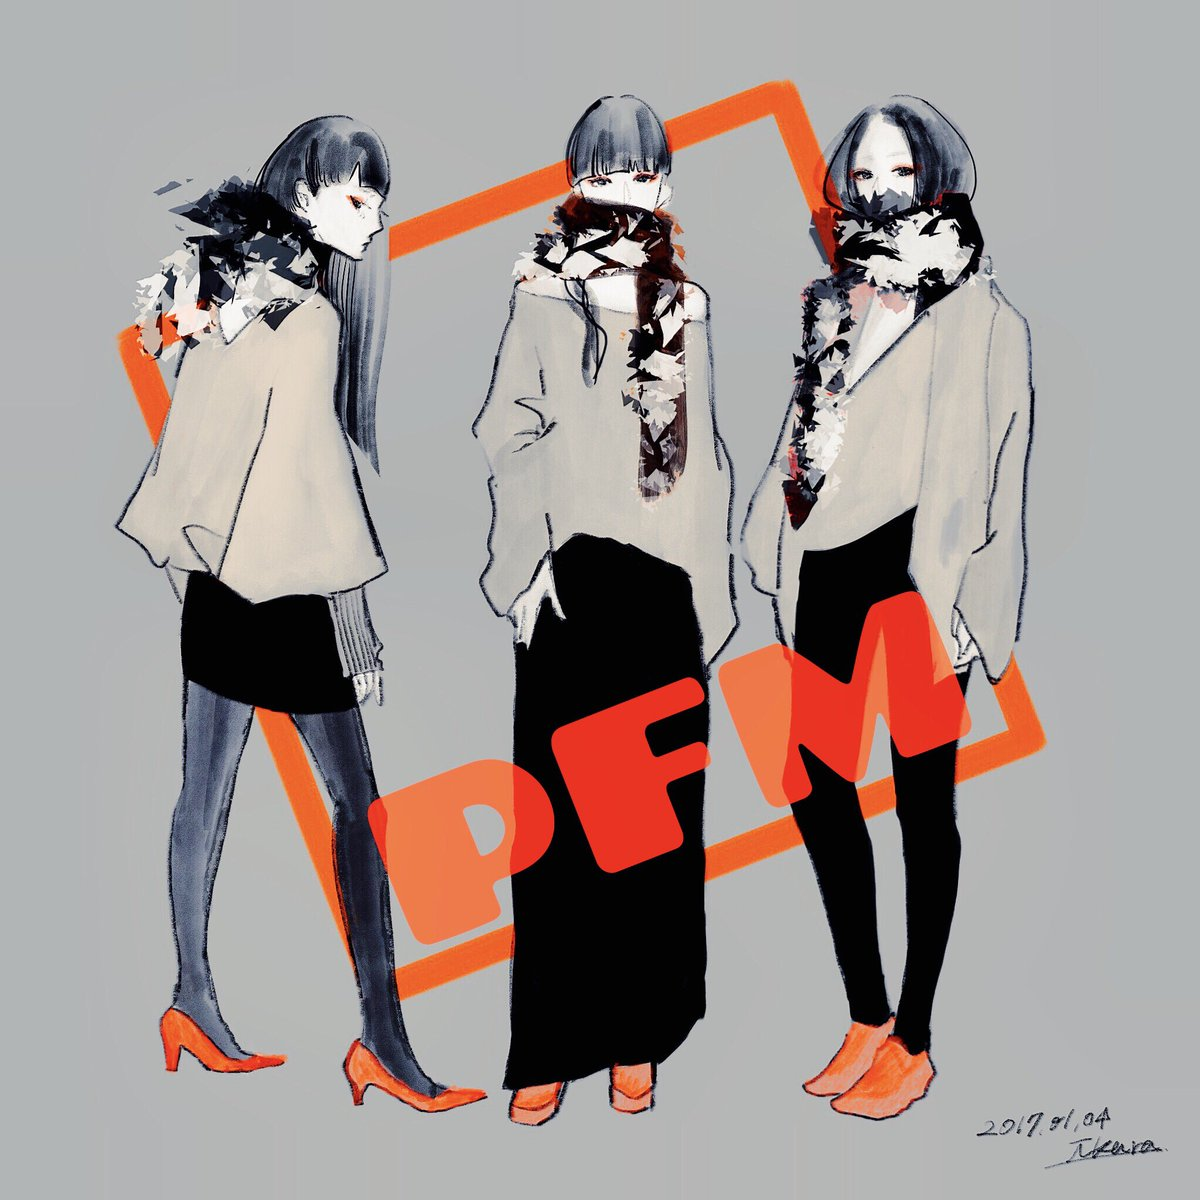 3人に似合いそうな服を_φ(・_・ #Perfume #pfm https://t.co/GBwdqhhxPN